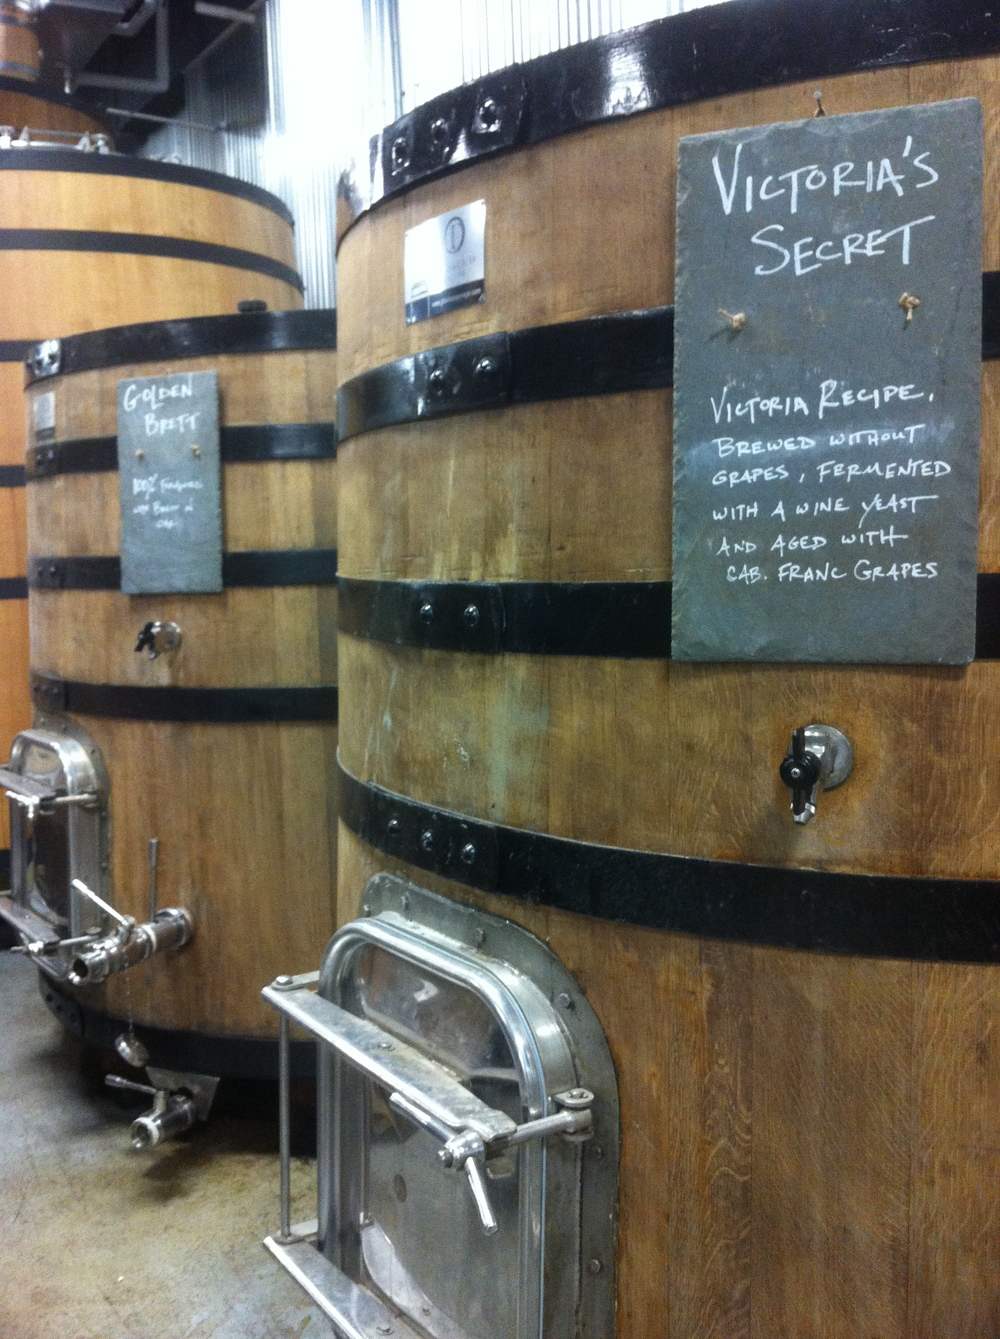 More pics inside the wild barrel room, Allagash Brewing Company, Portland